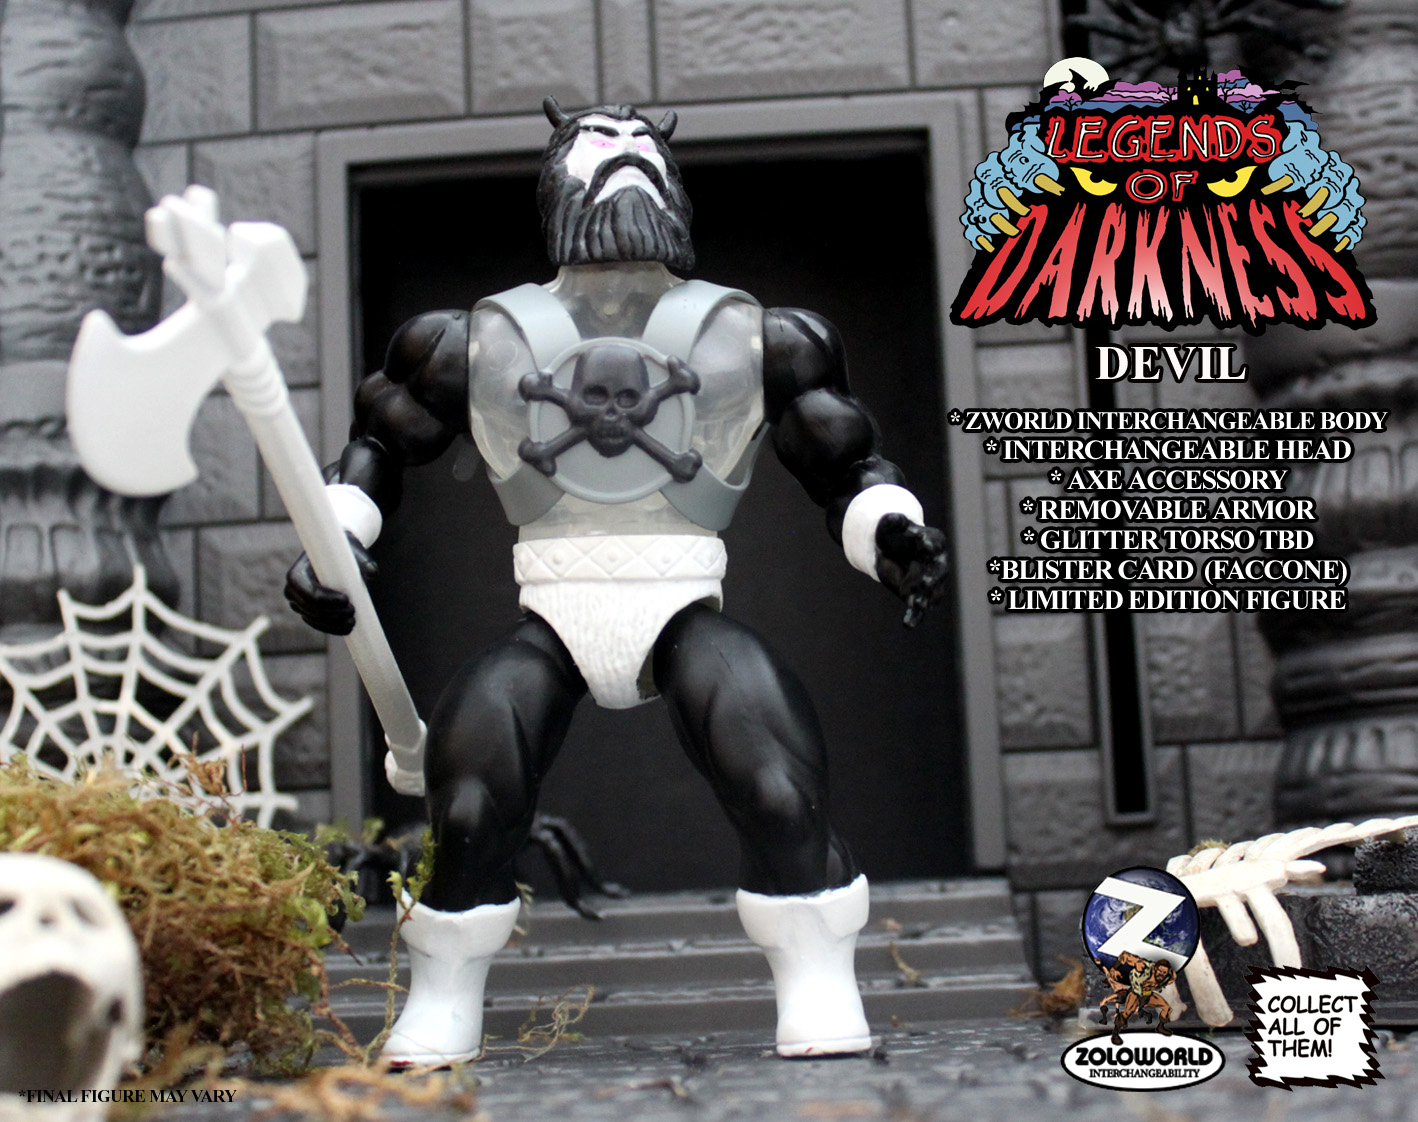 LEGENDS OF DARKNESS DEVIL MONSTER FIGURE - Click Image to Close